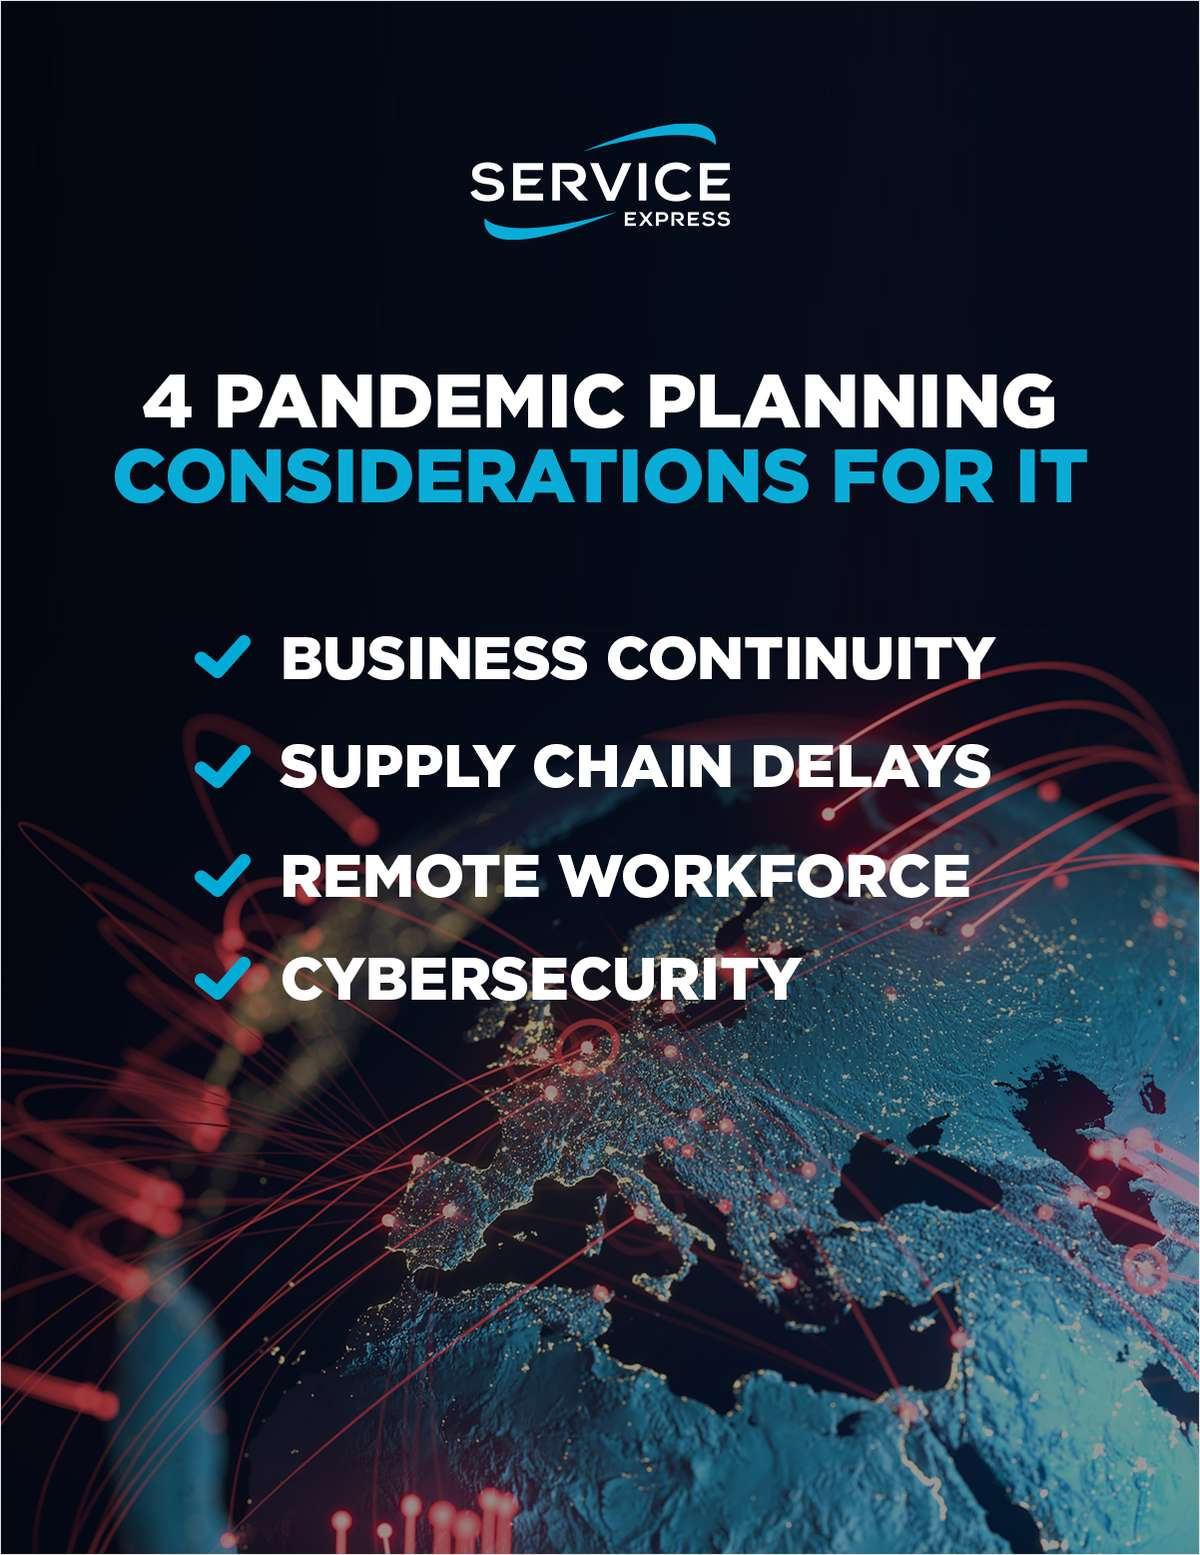 4 Pandemic Planning Considerations for IT